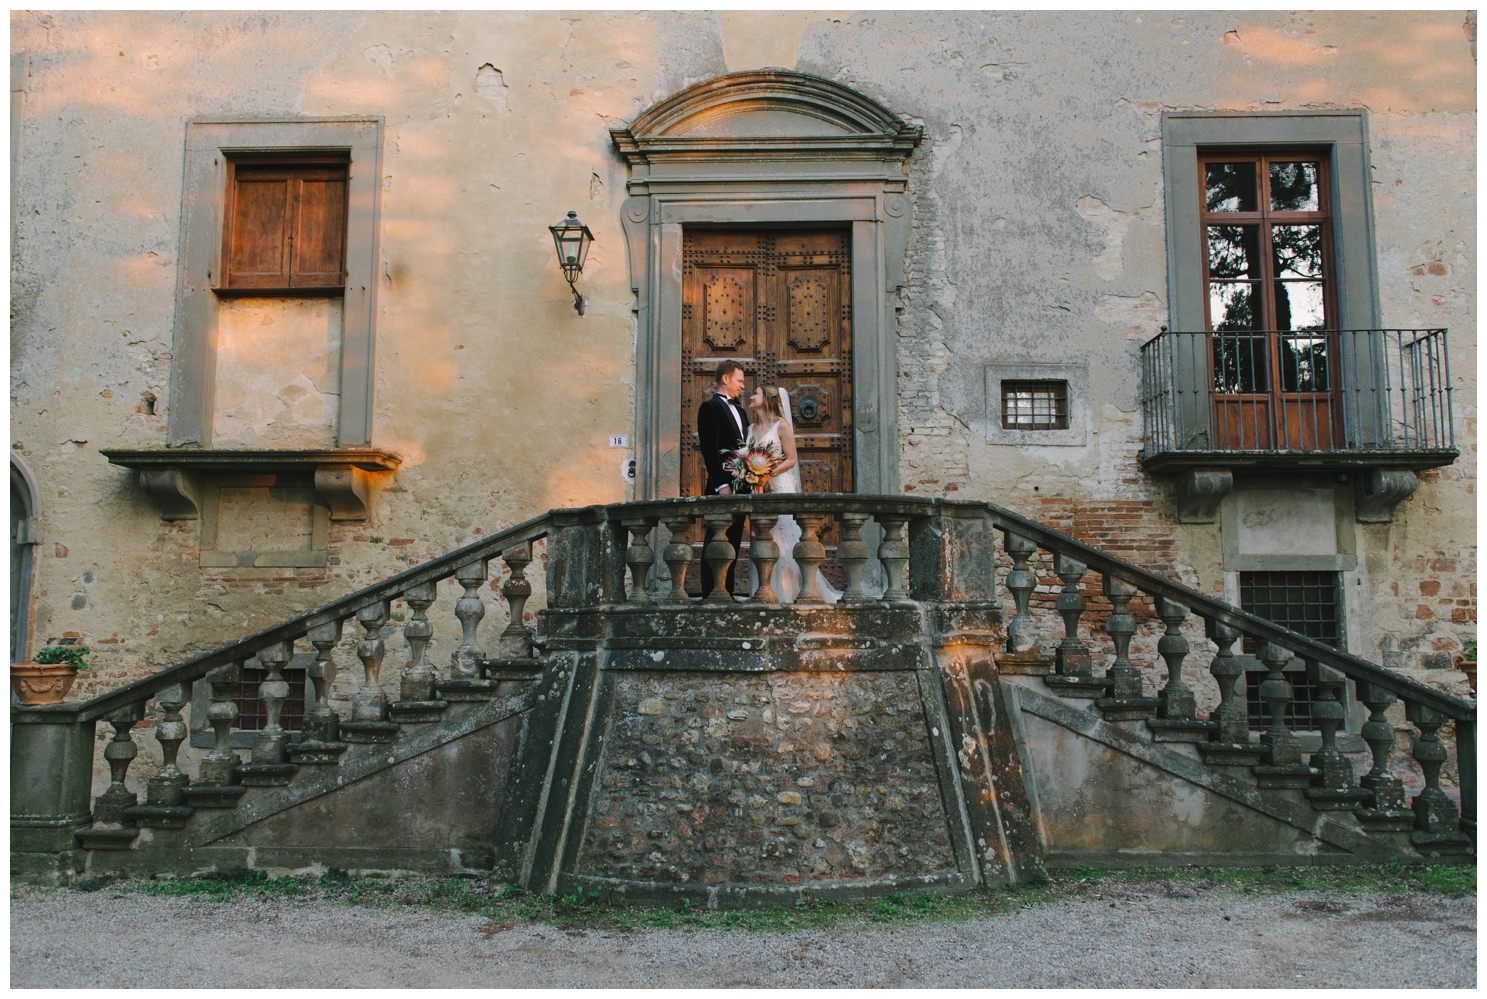 Wedding_Photographer_Tuscany_Italy_0072.jpg